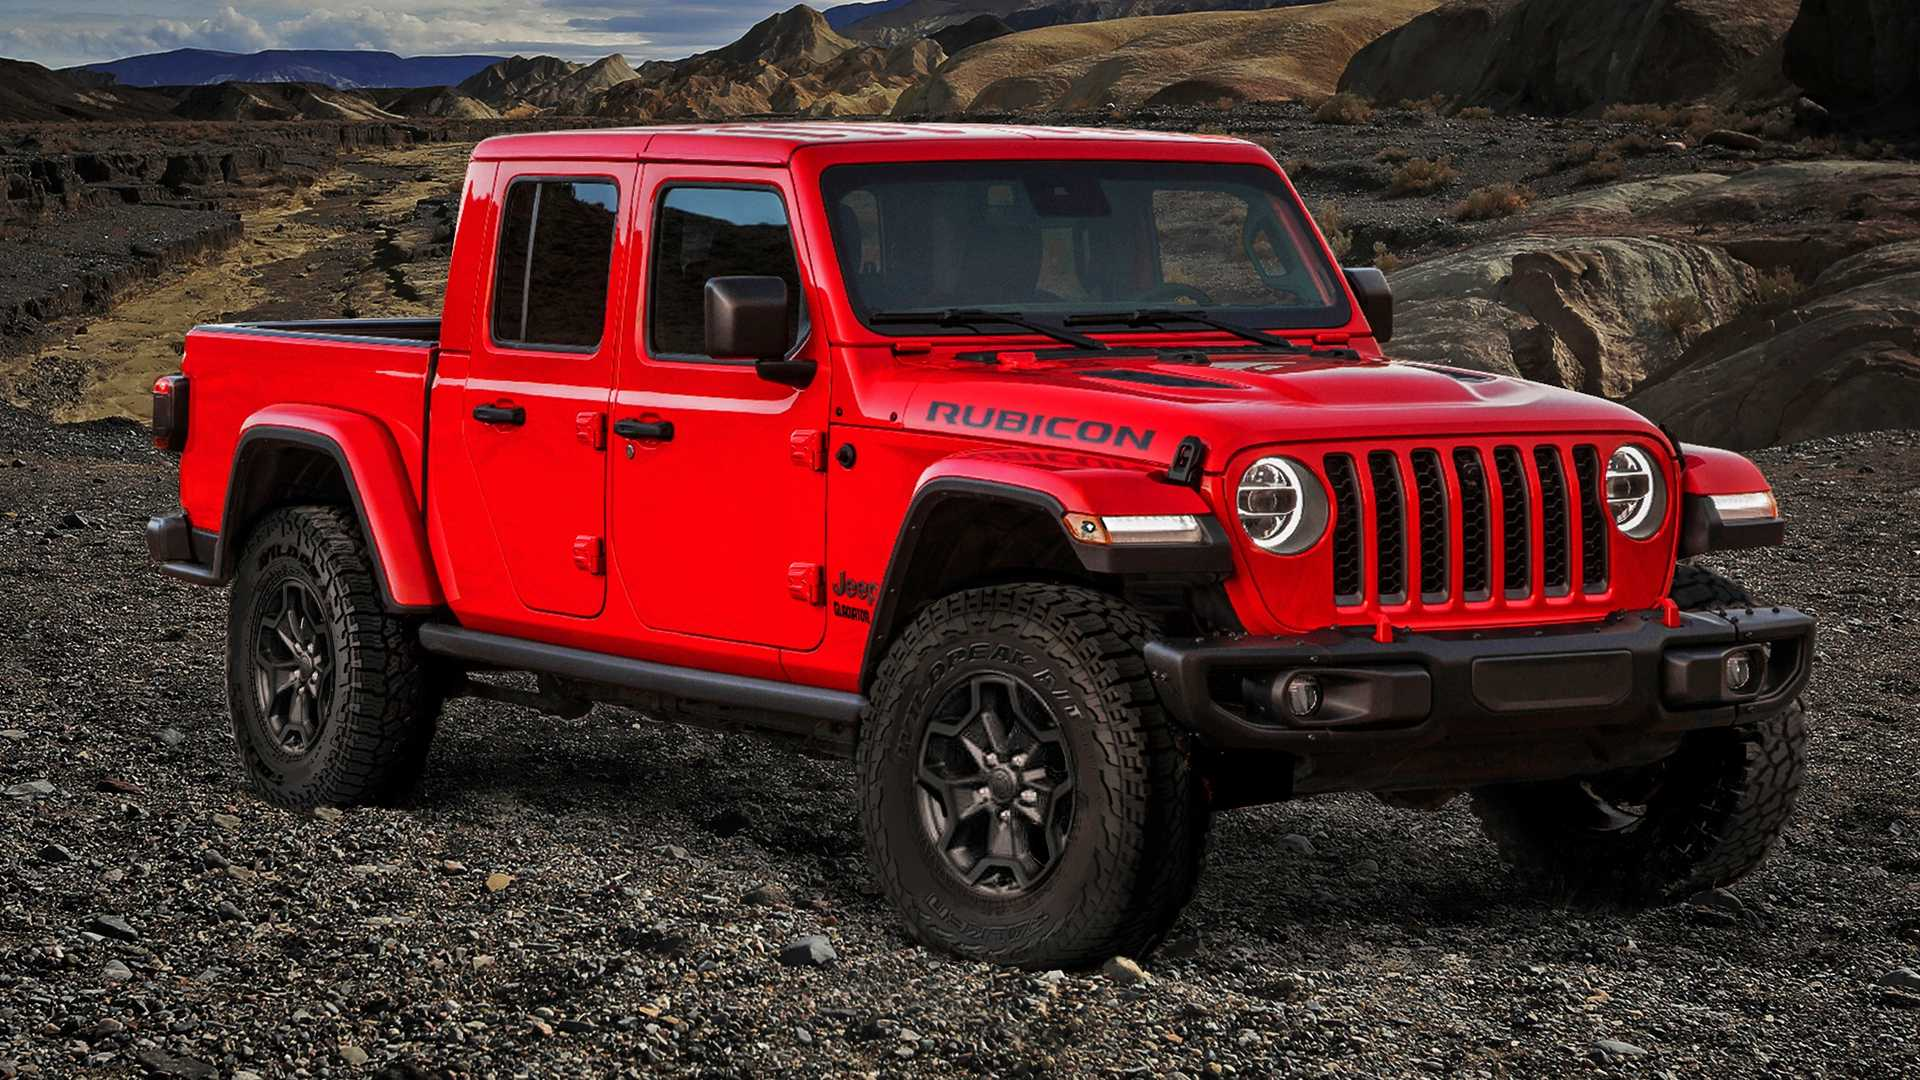 11 All New Price For 2020 Jeep Gladiator Prices